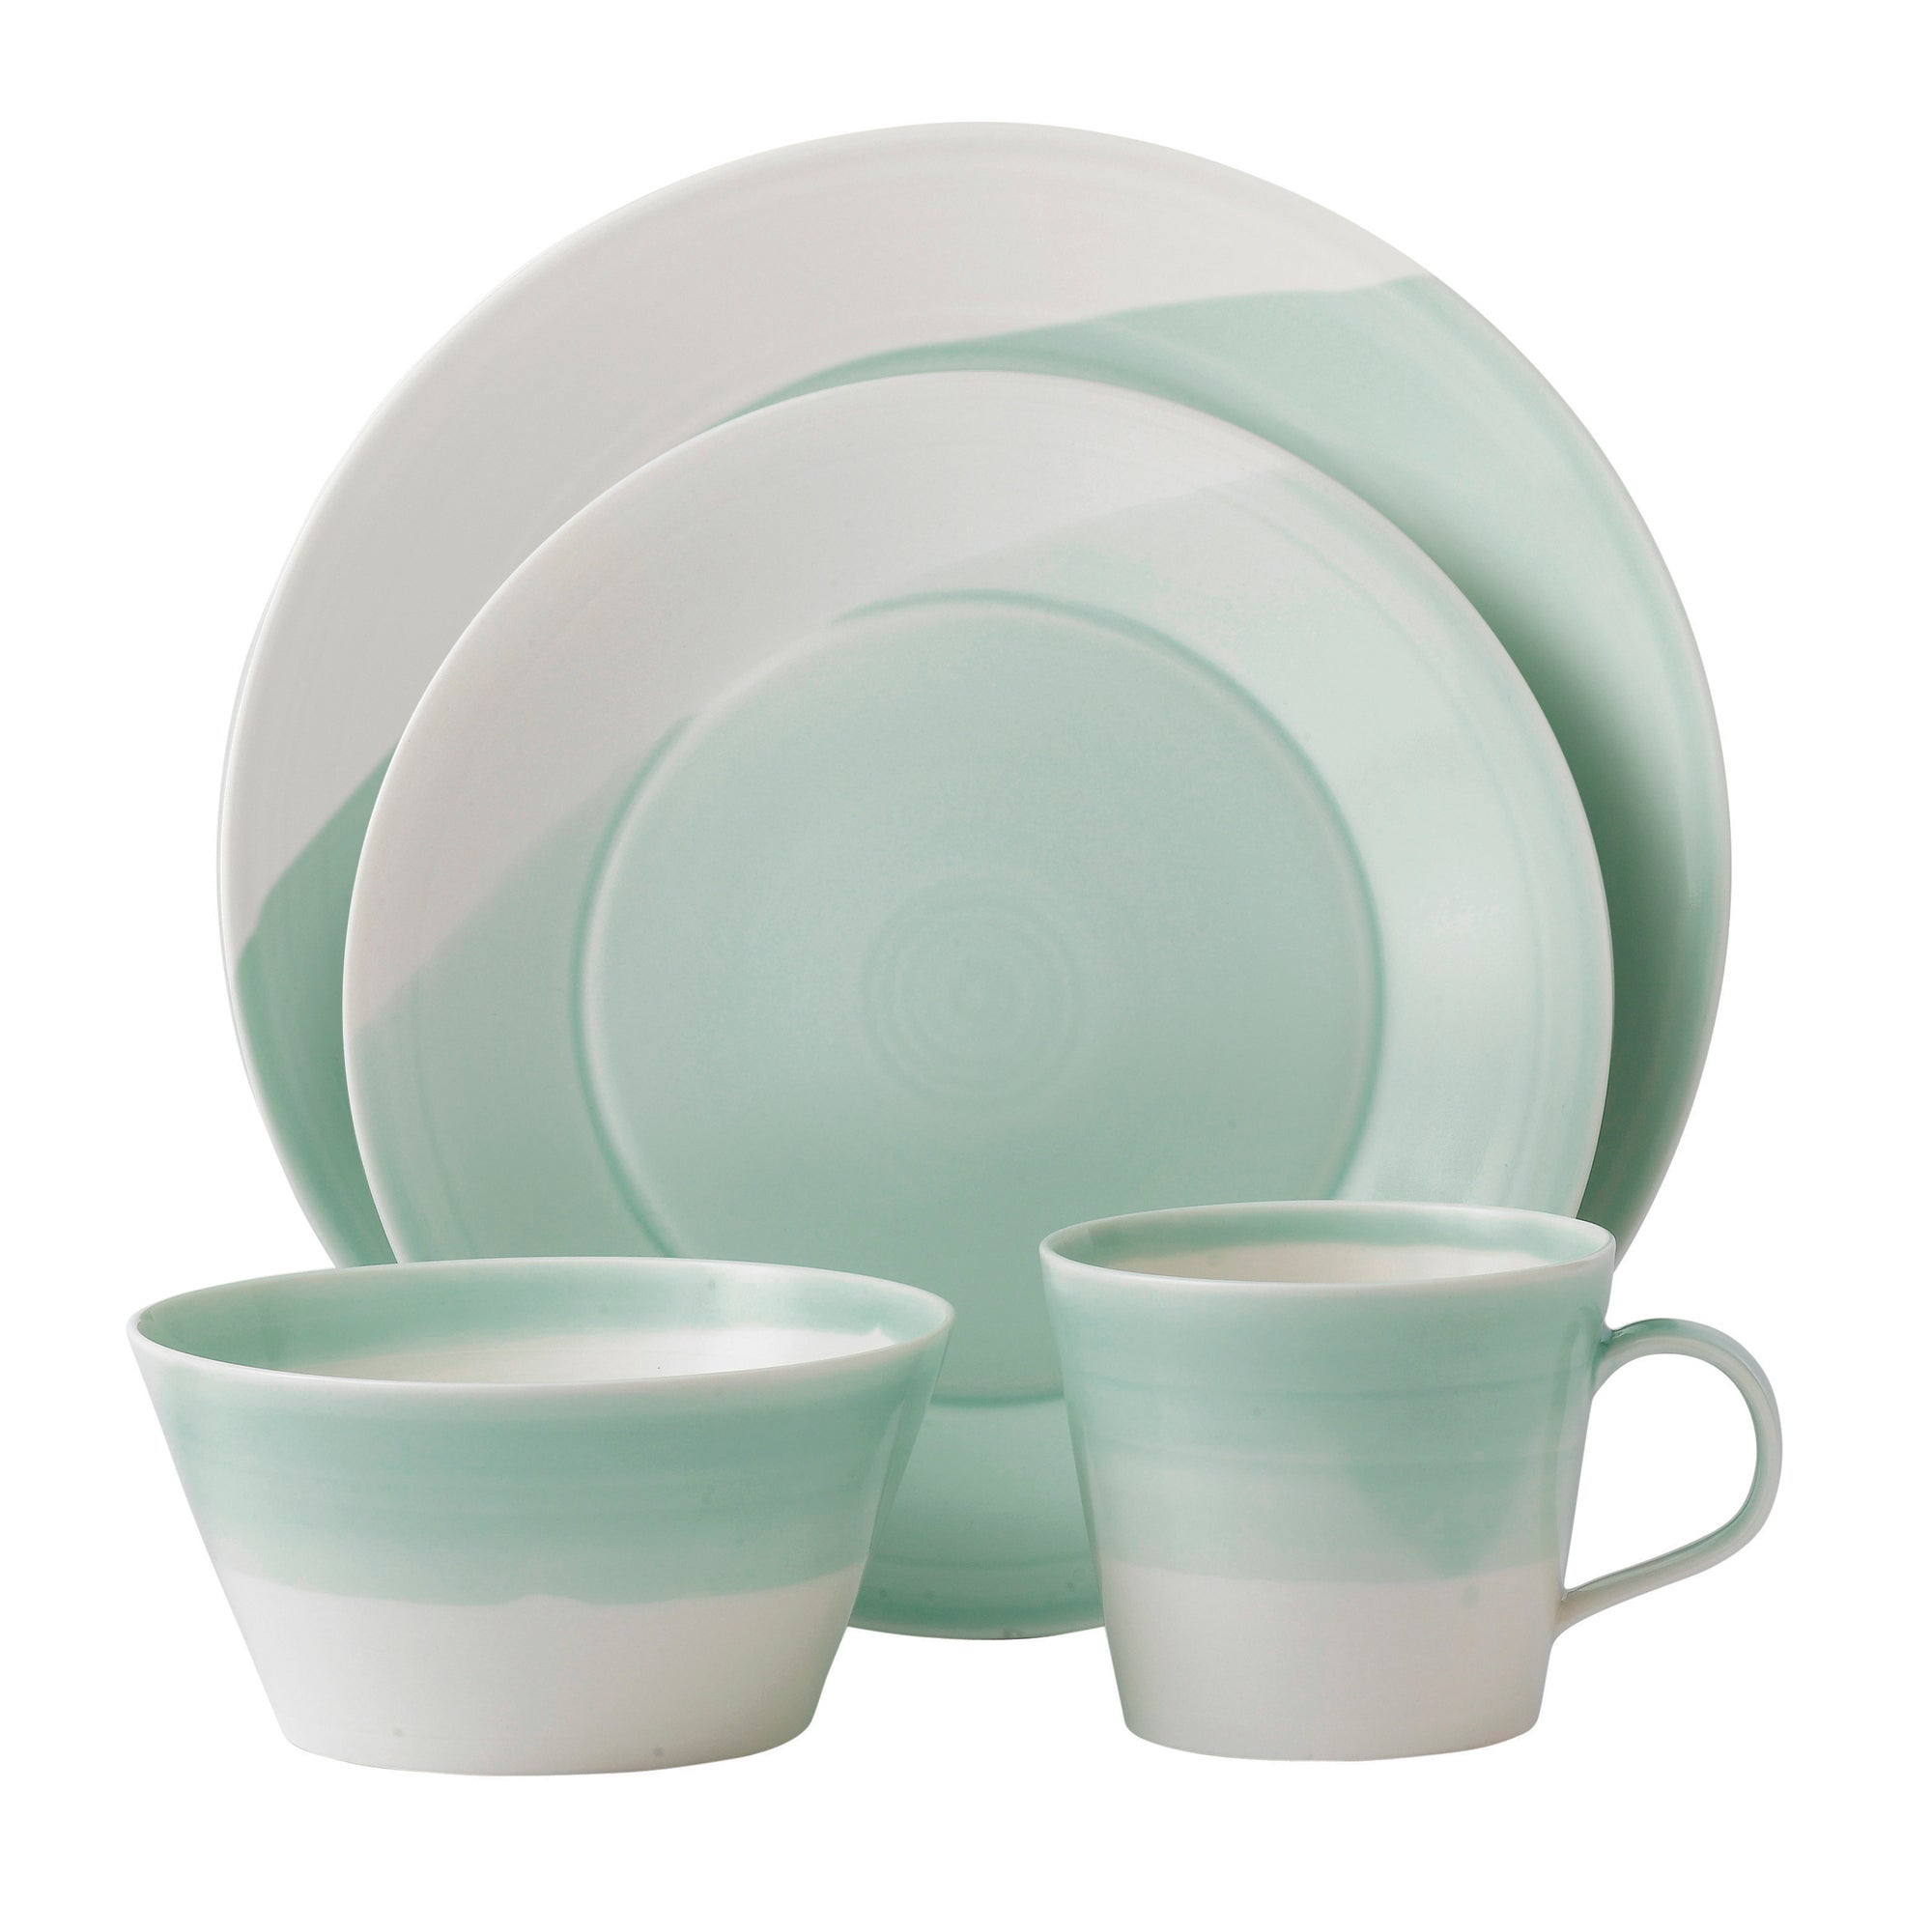 Royal Doulton Green 1815 Collection 16 Piece Dinner Set